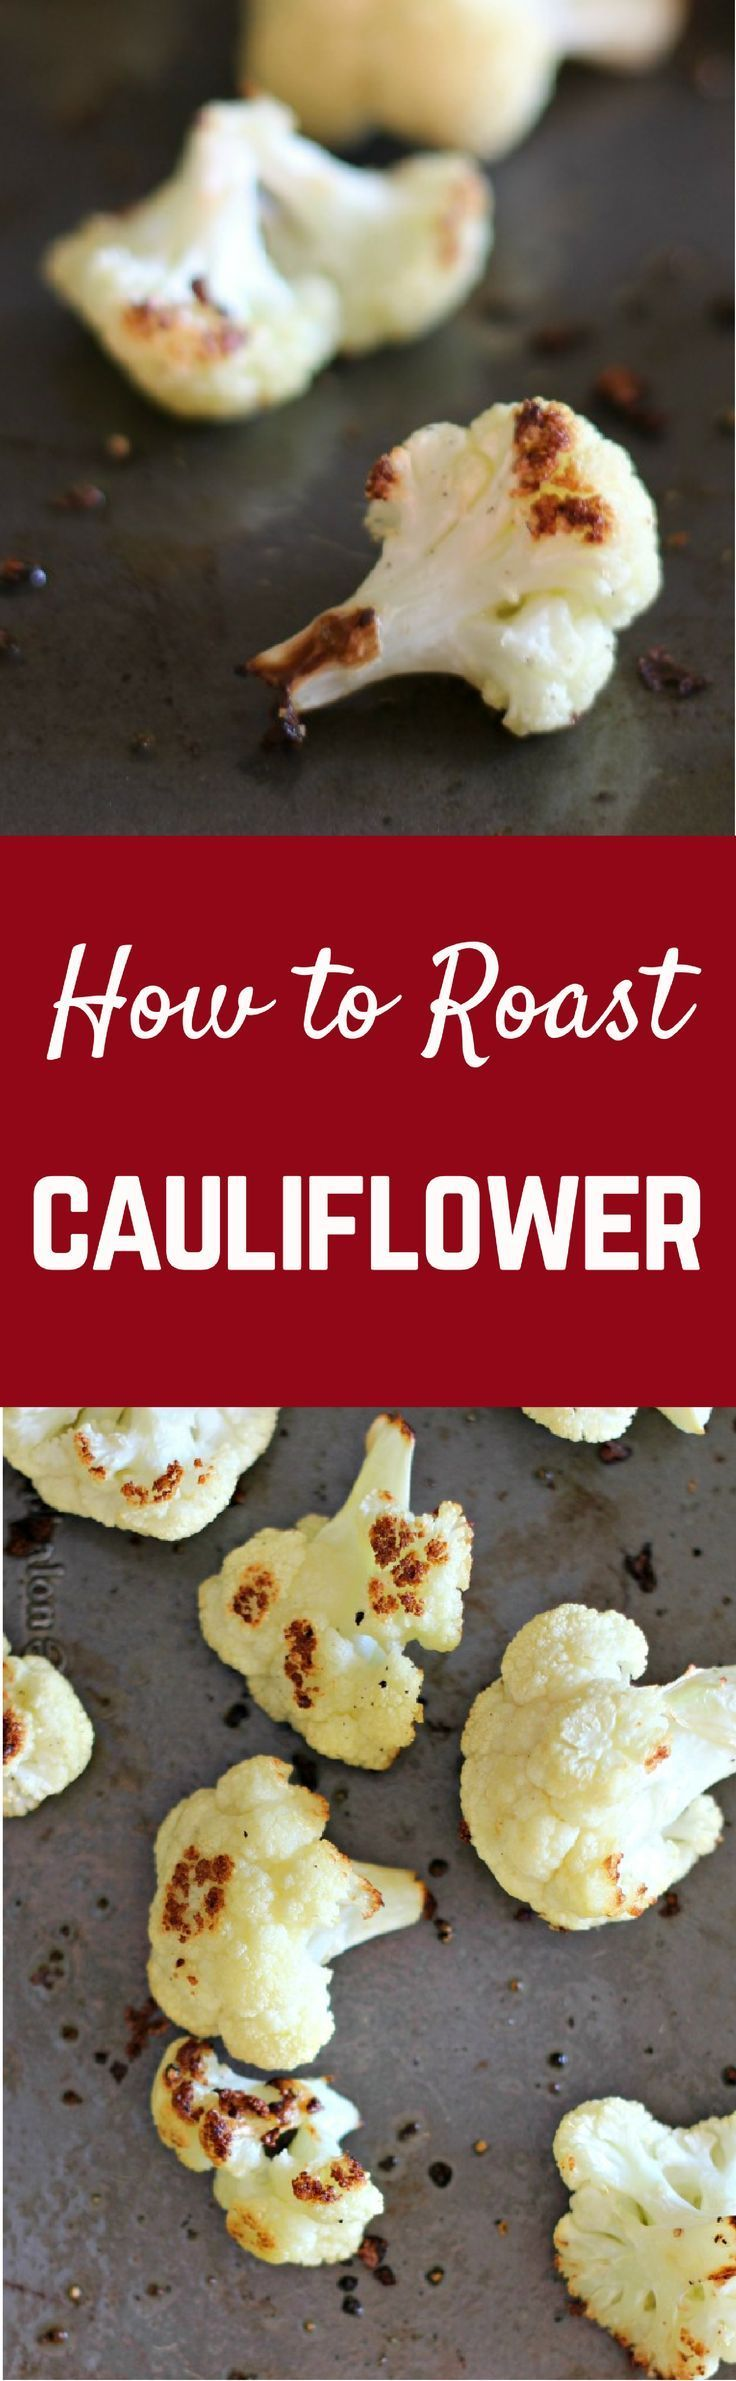 How to Roast Cauliflower | http://RachelCooks.com